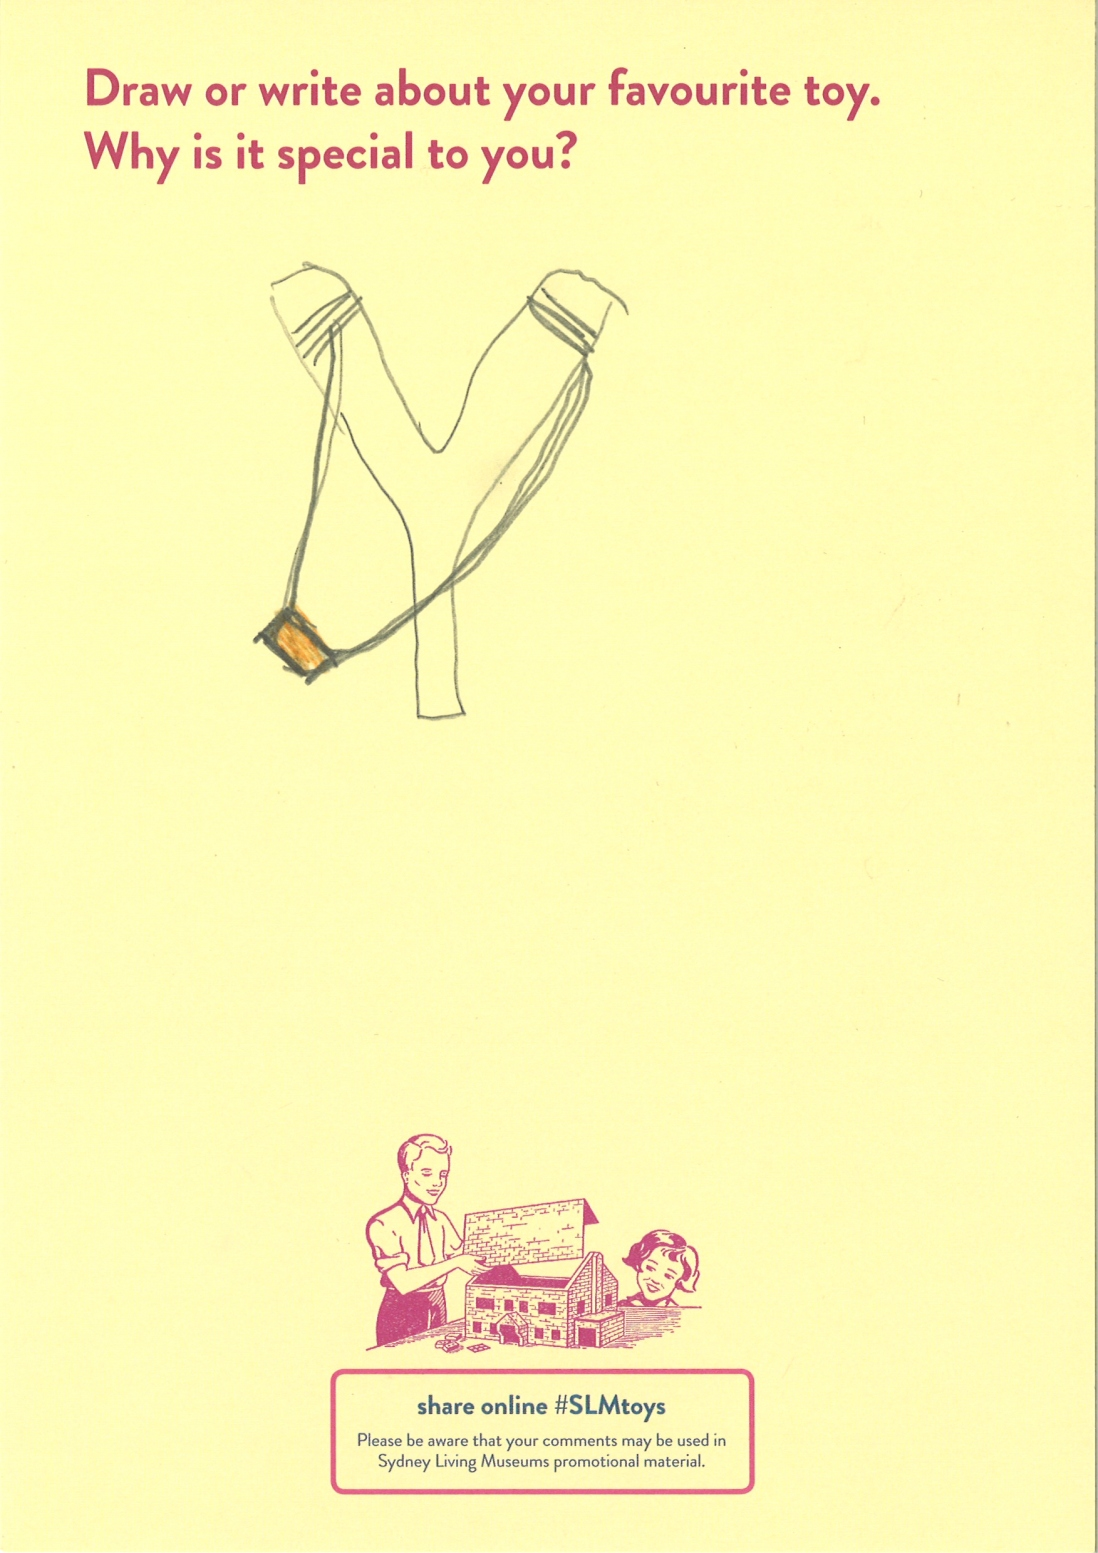 A child's drawing of a sling shot